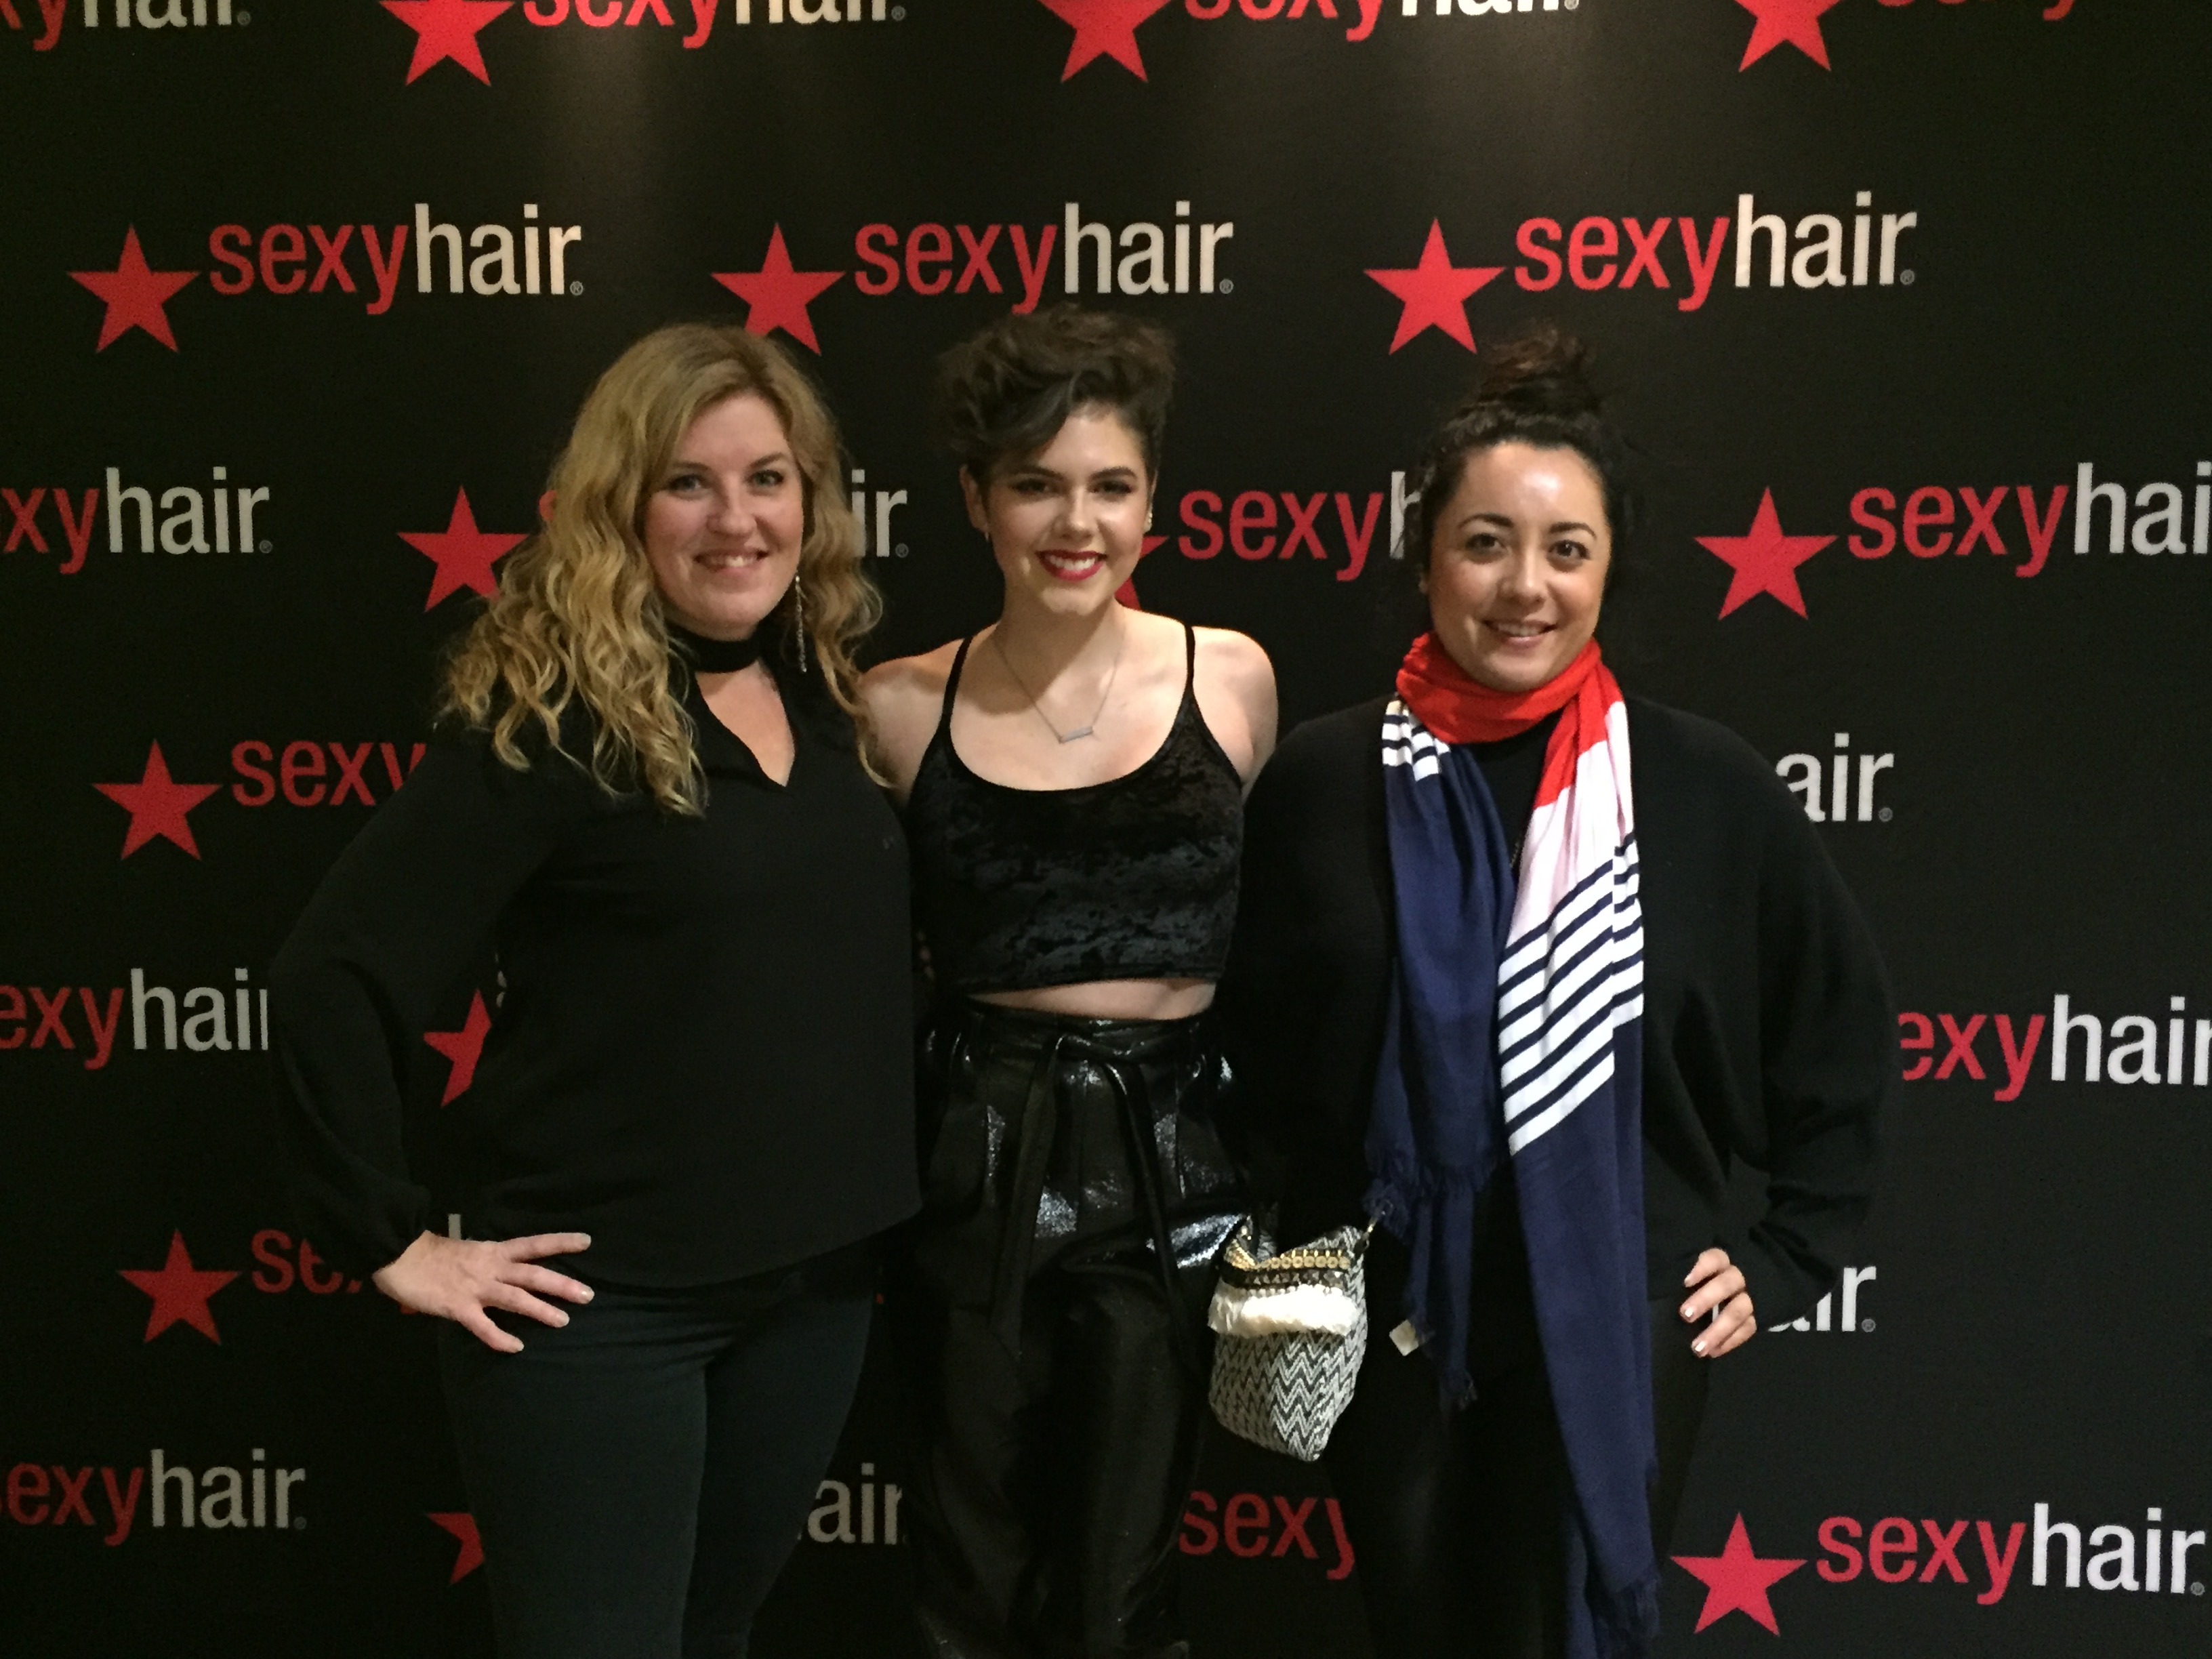 American Salon Editor in Chief Amy Dodds (left) poses with singer Calysta Bevier and West Coast Editor Kamala Kirk during Sexy Hair's Red Party.